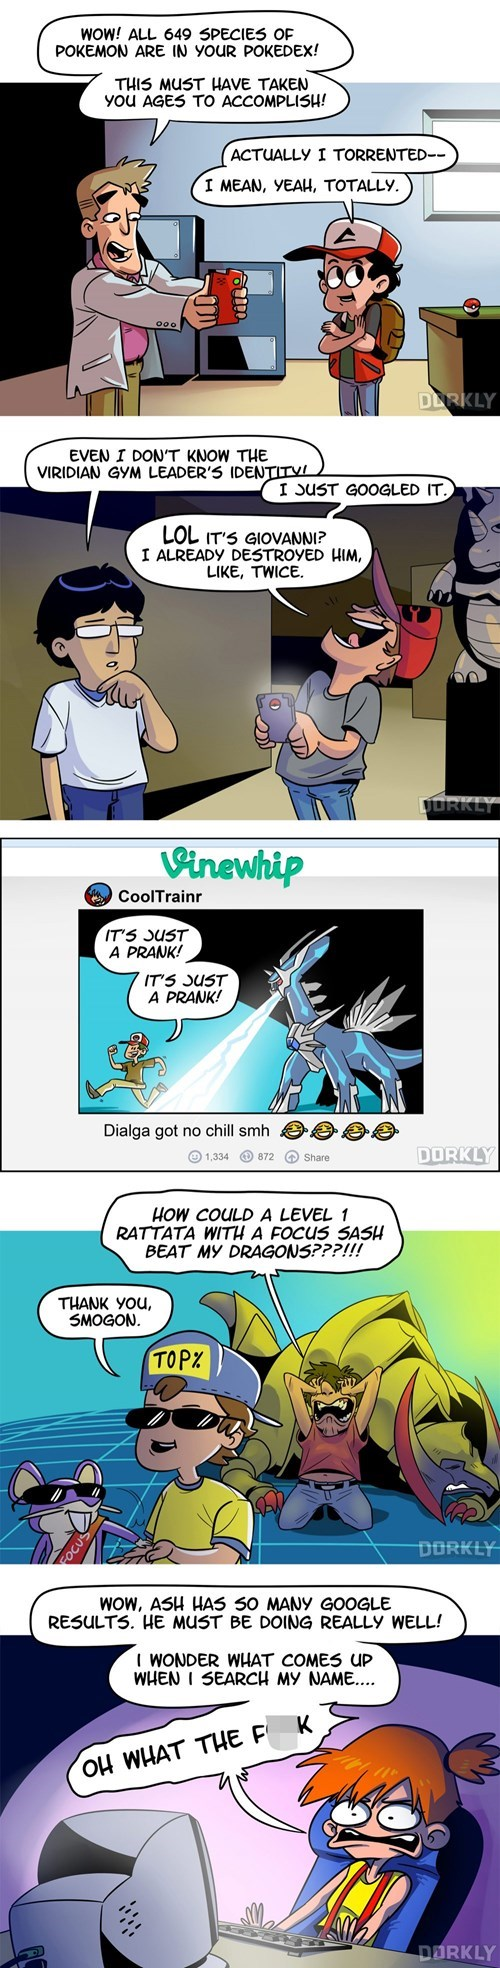 It's a Good Thing the Pokémon Universe Doesn't Have the Internet